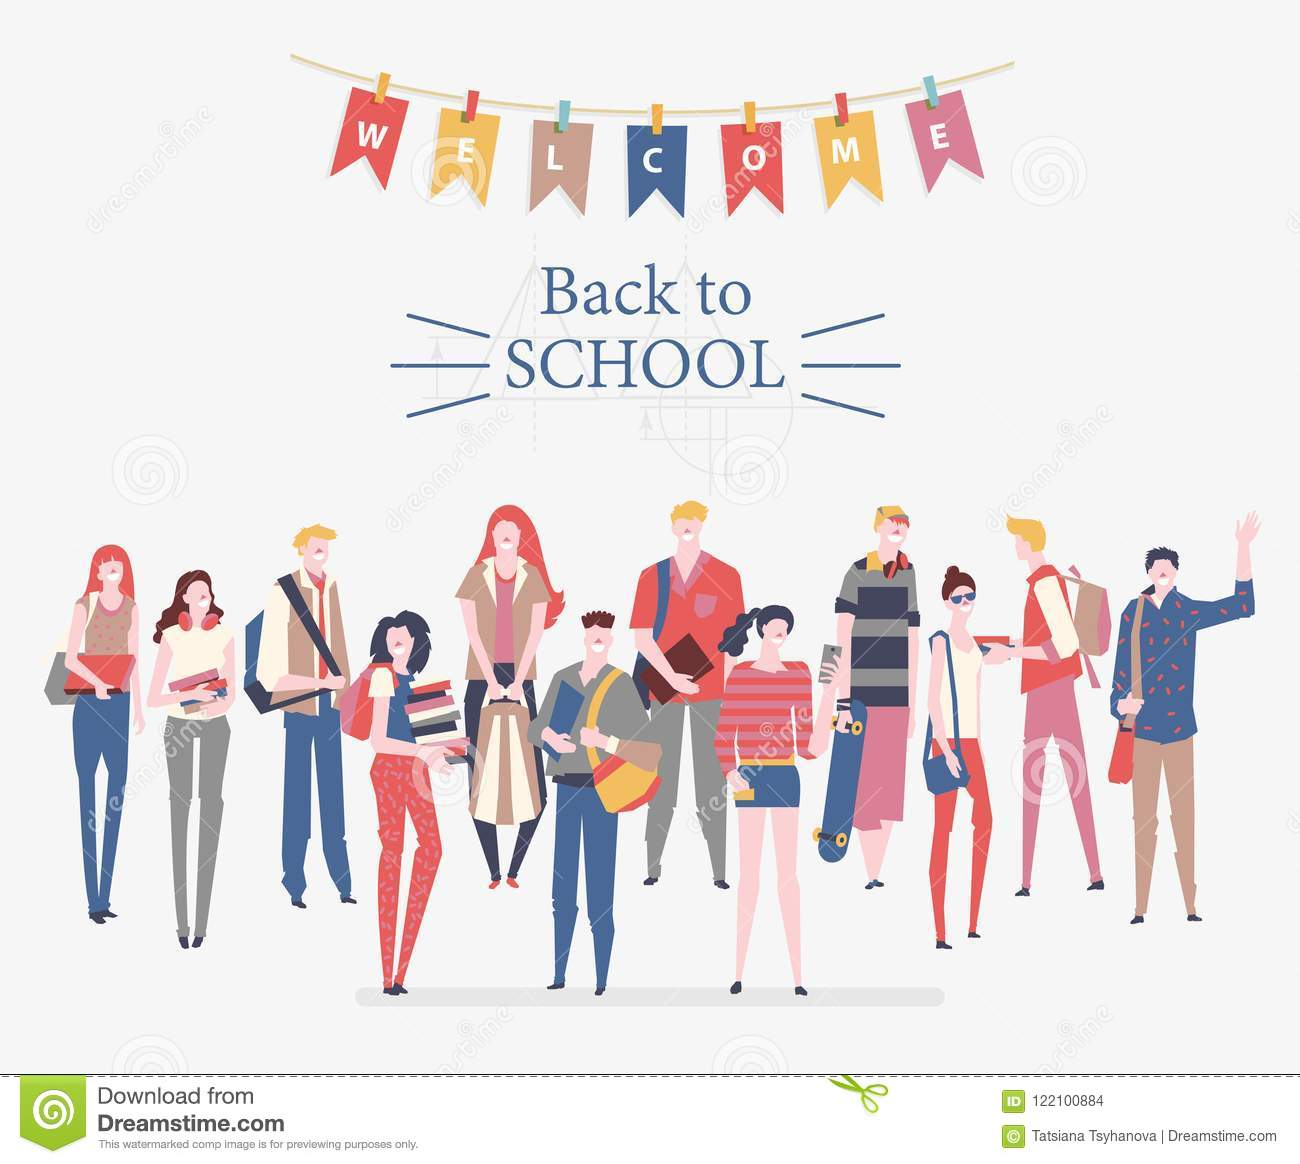 Schoolgirls, schoolboys with books, backpacks and school bags. Back to school vector poster in flat style. Happy and smiling te